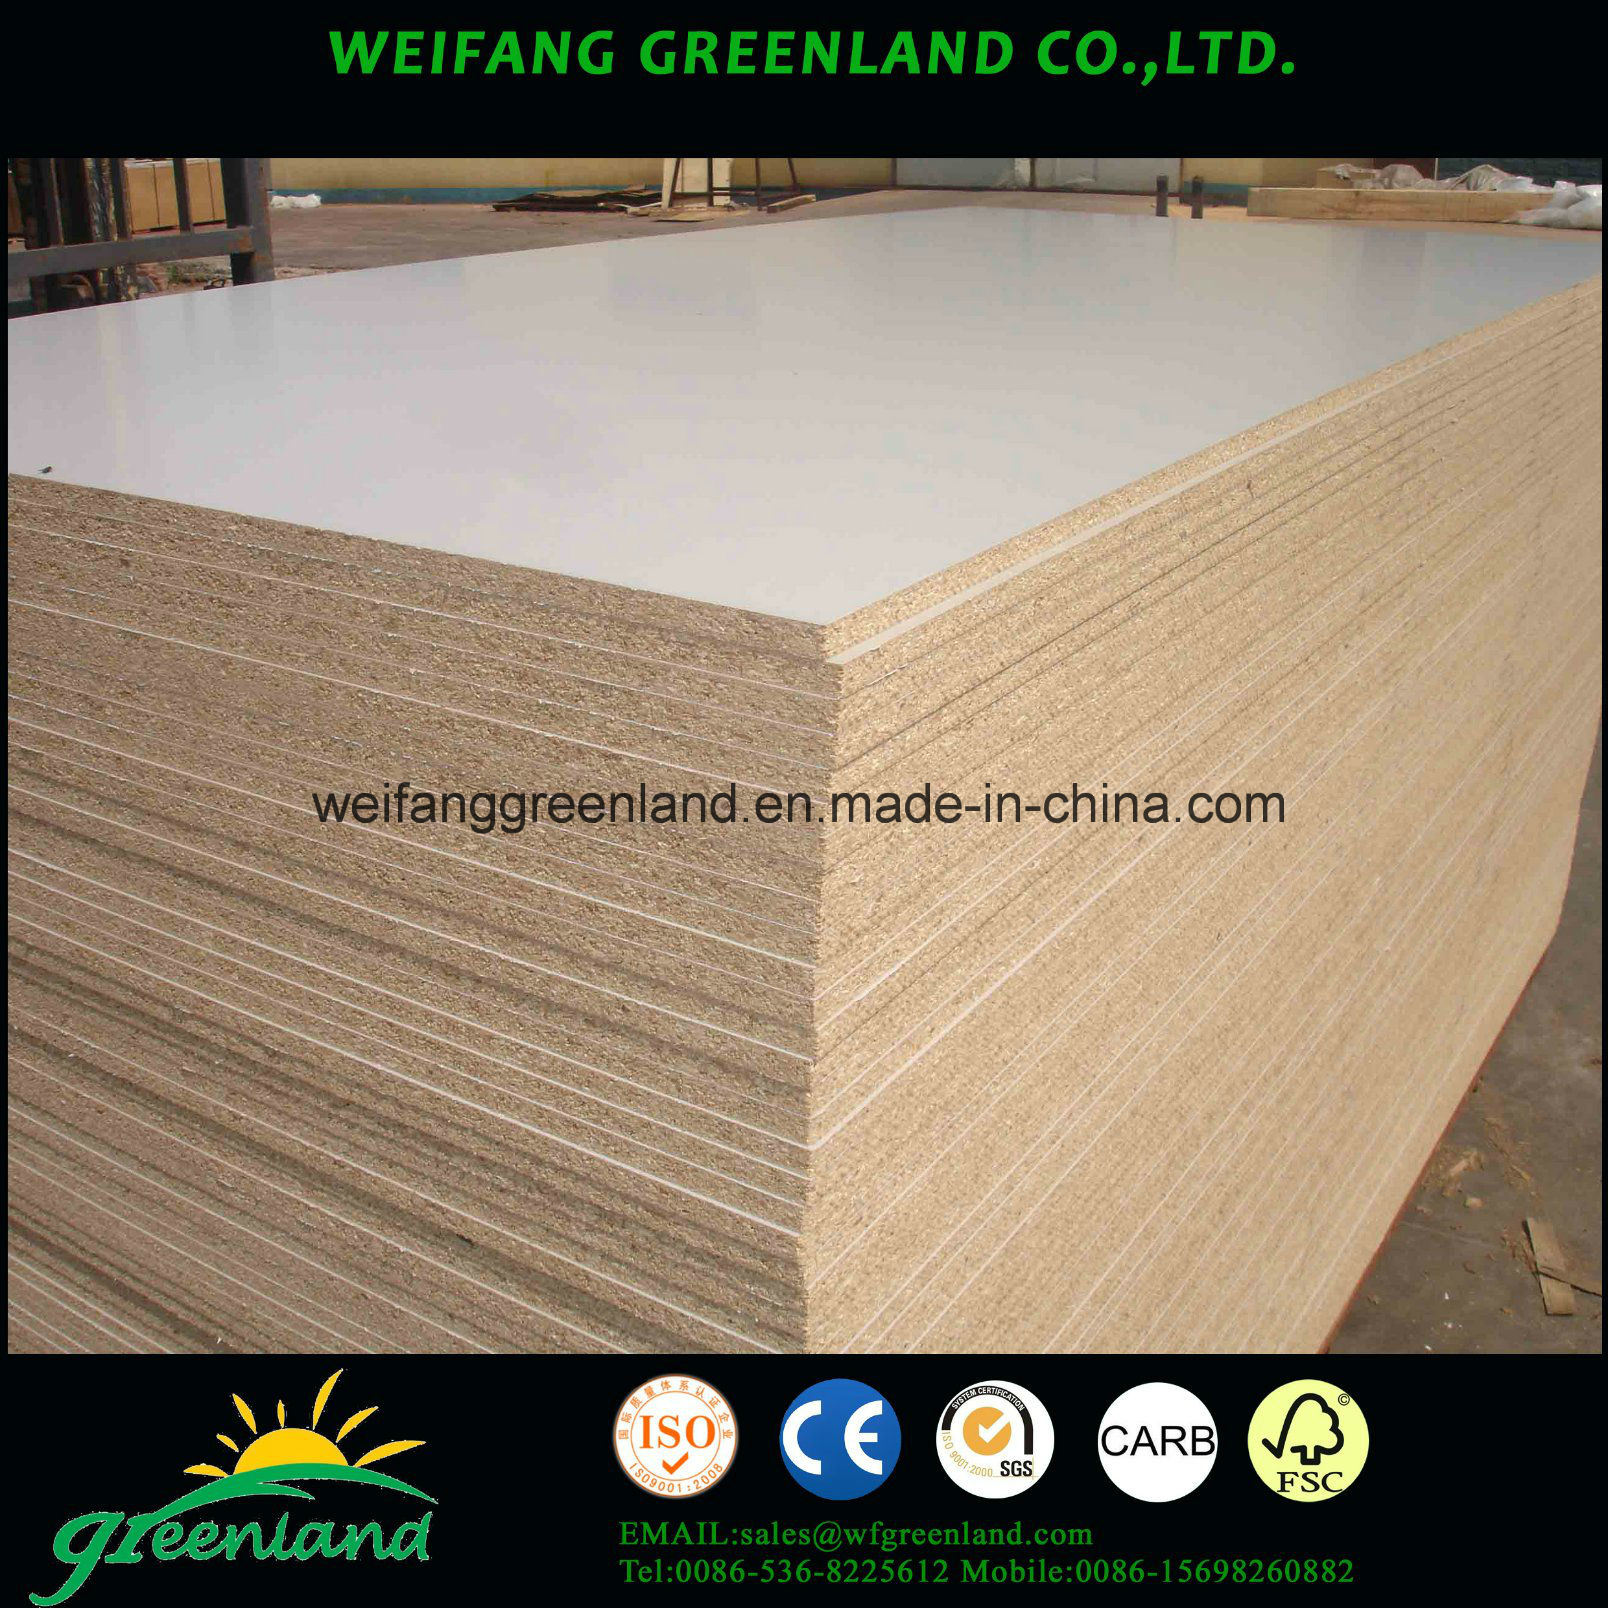 E1 Grade Wengecolour Laminated Chipboard for Furniture